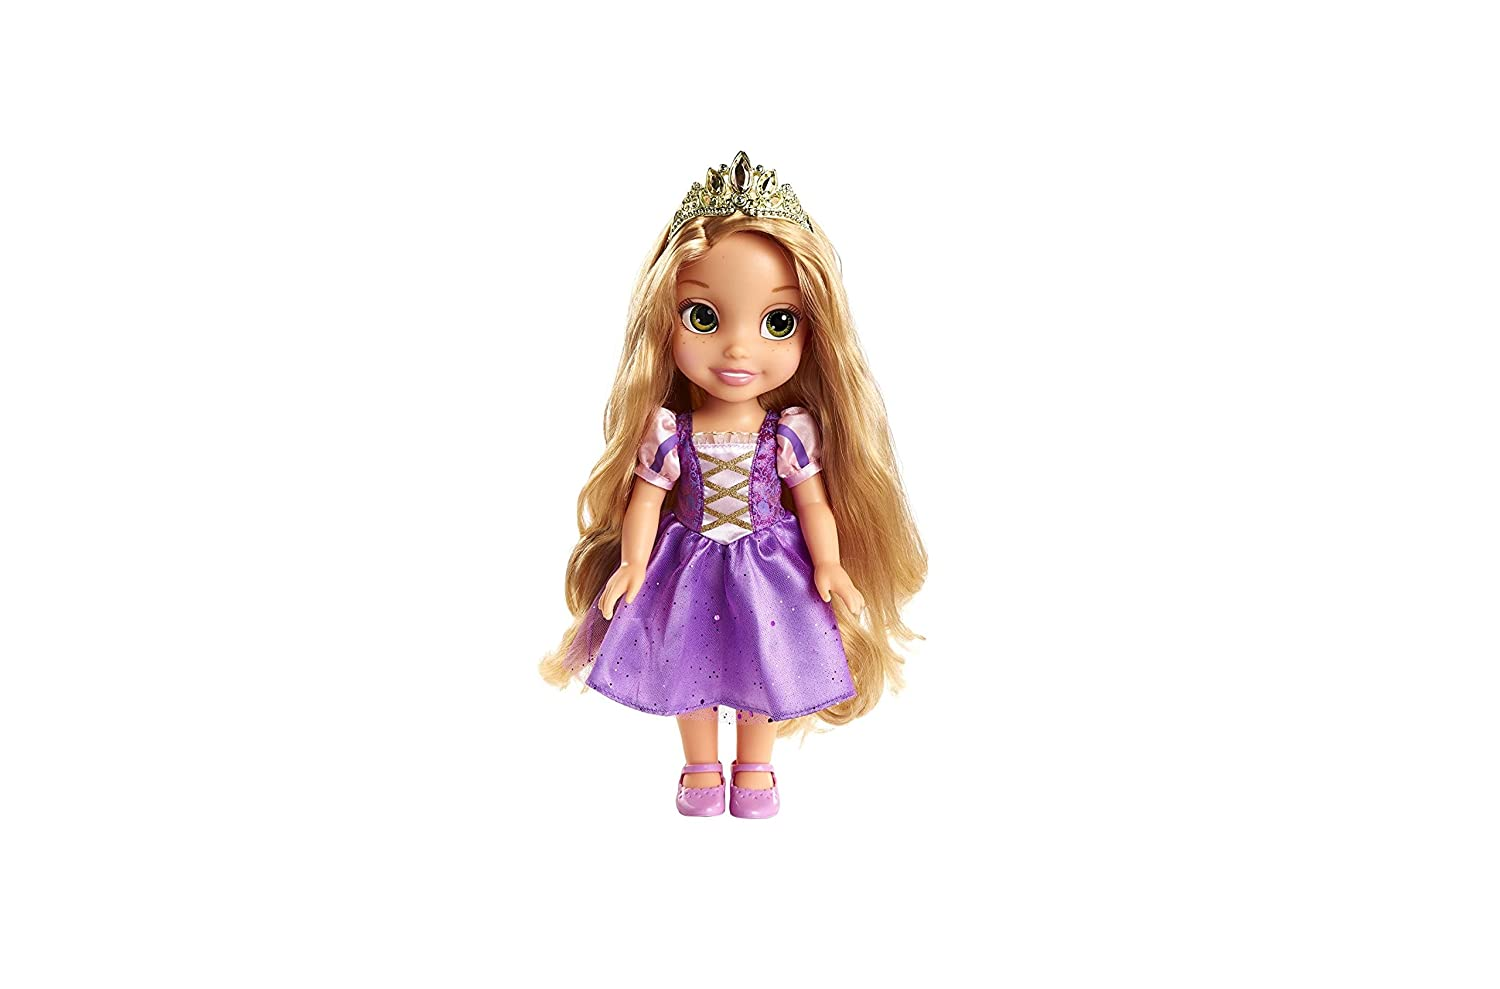 Keys to the Kingdom Rapunzel Toddler Doll with Royal Reflection Eyes that Shine and Shimmer by Jakks Pacific